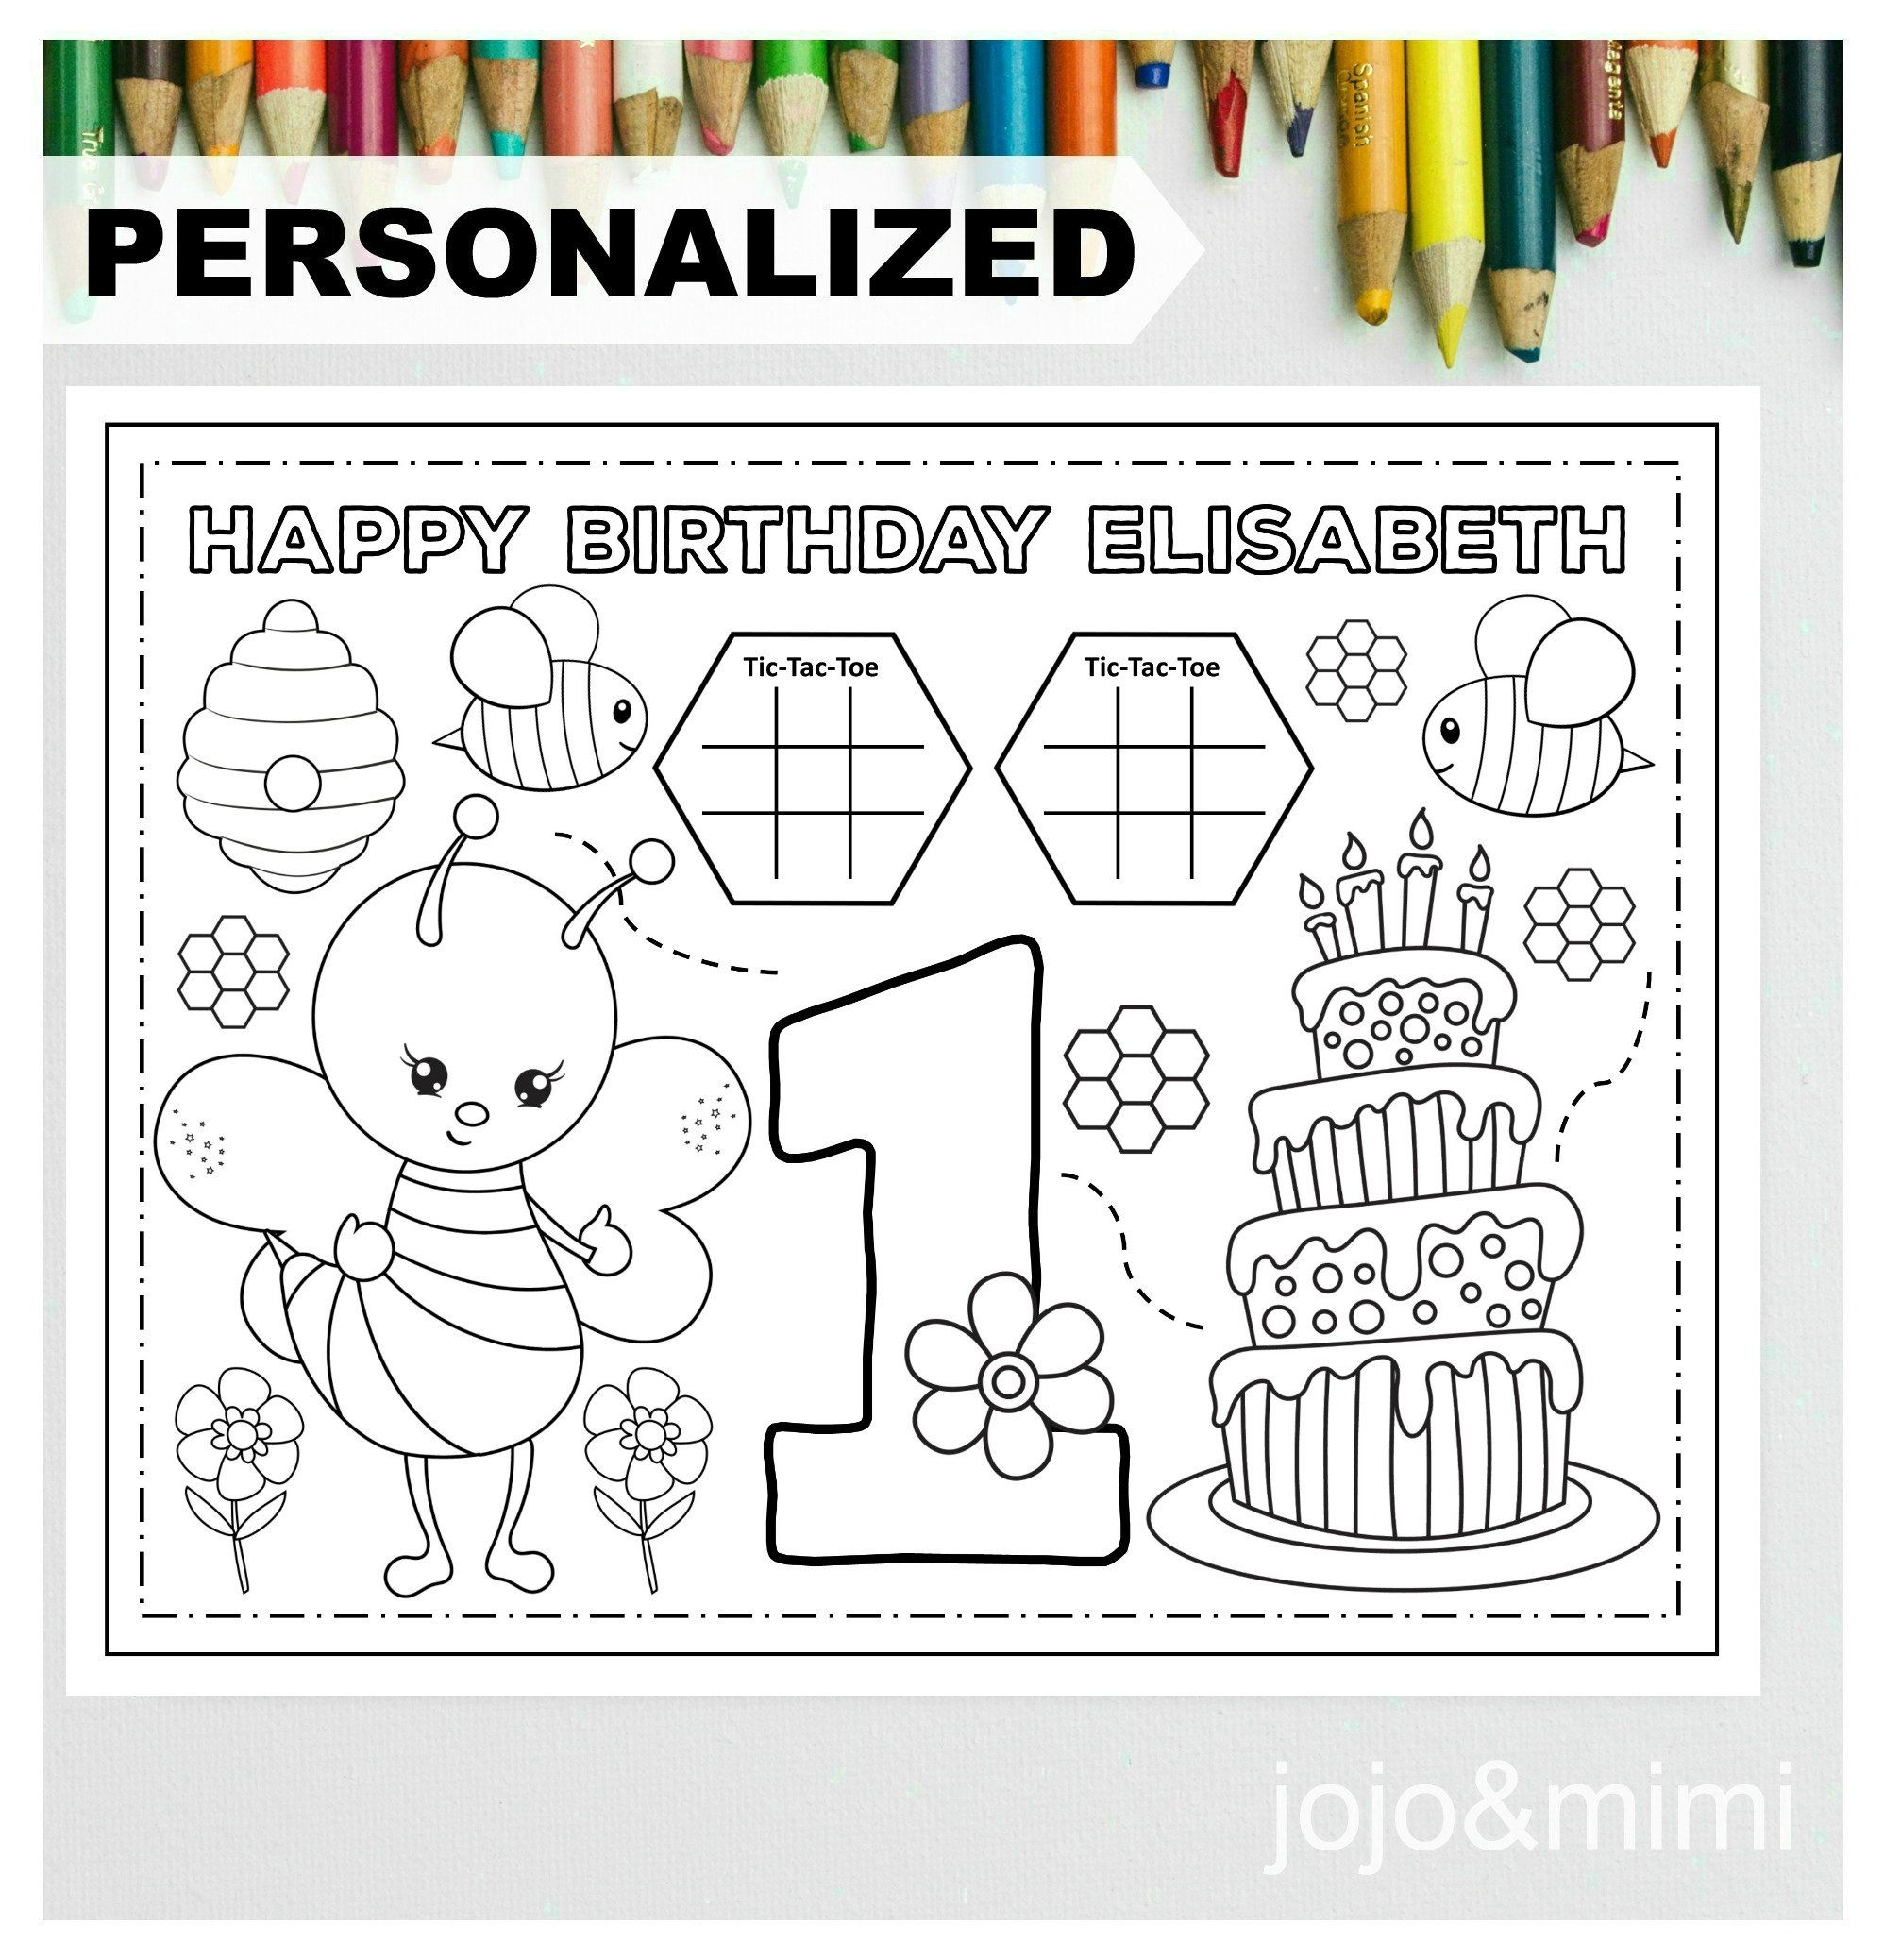 Personalized Bee Happy Birthday Printable Placemat Activity Bee Theme Coloring Page Kids Birthday Party Placemat First Birthday Bee Birthday In 2020 Happy Birthday Printable Bee Birthday Birthday Printables